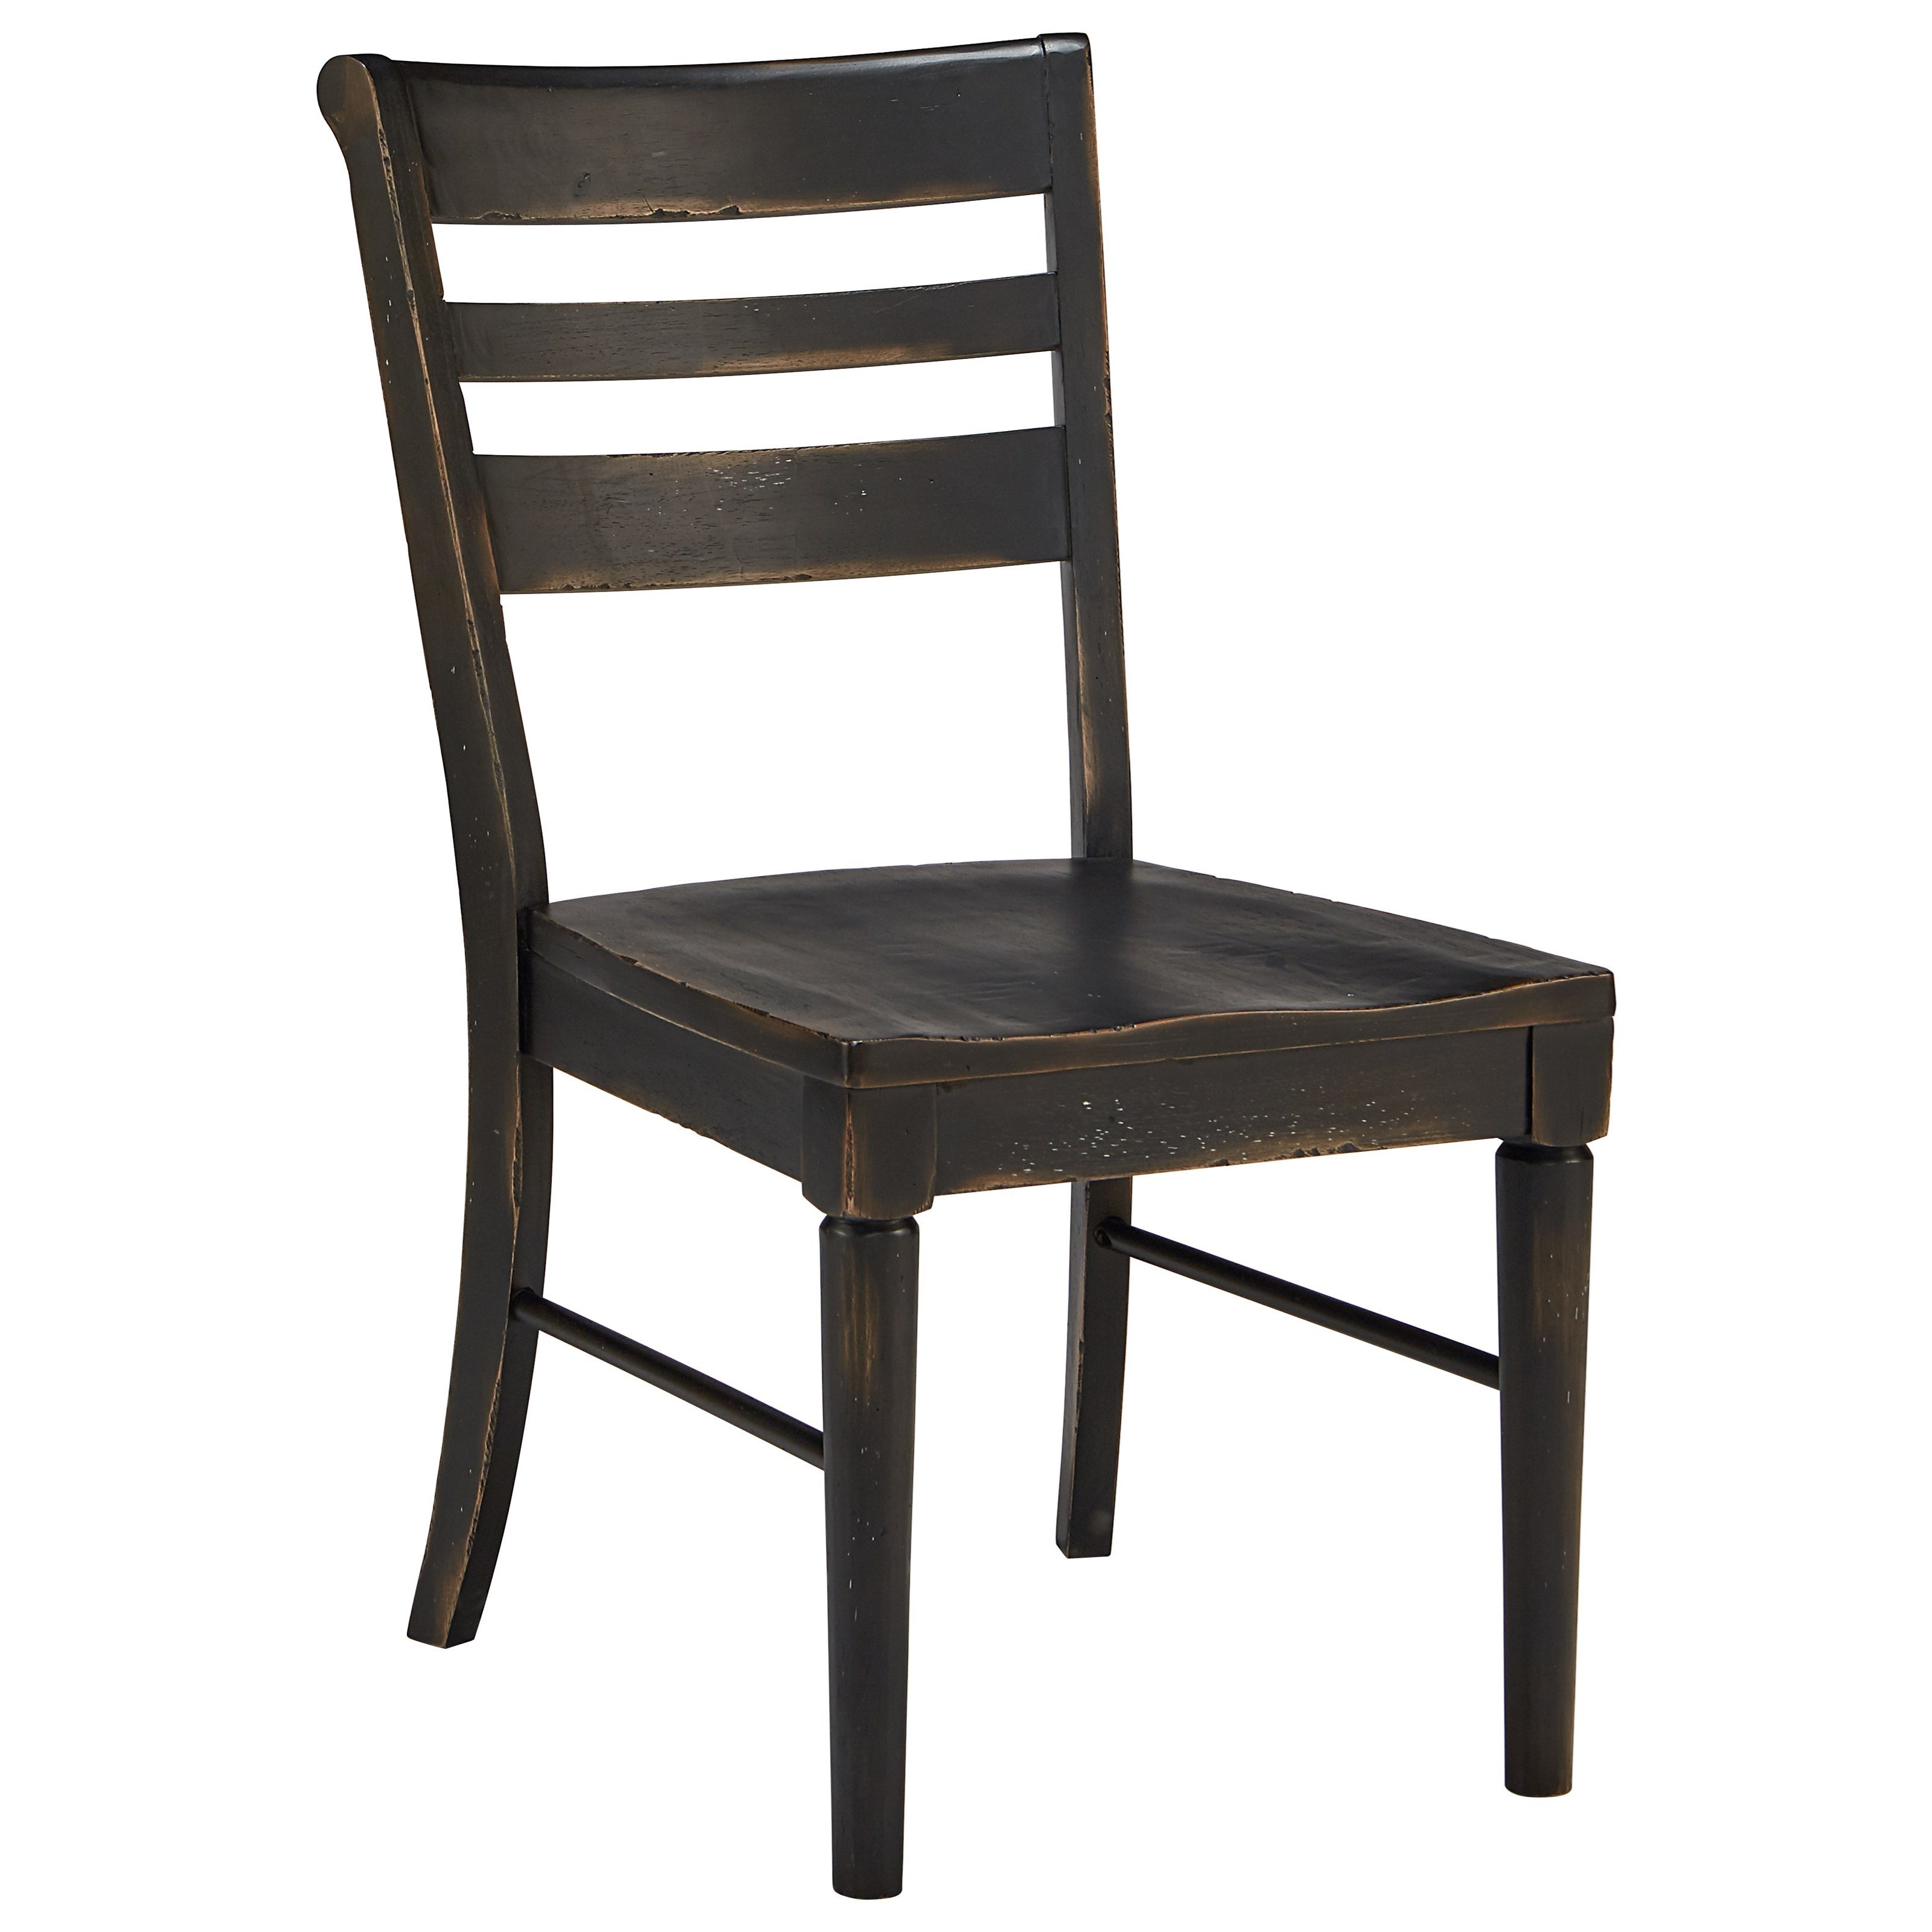 Magnolia Home By Joanna Gaines PrimitiveDining Side Chair